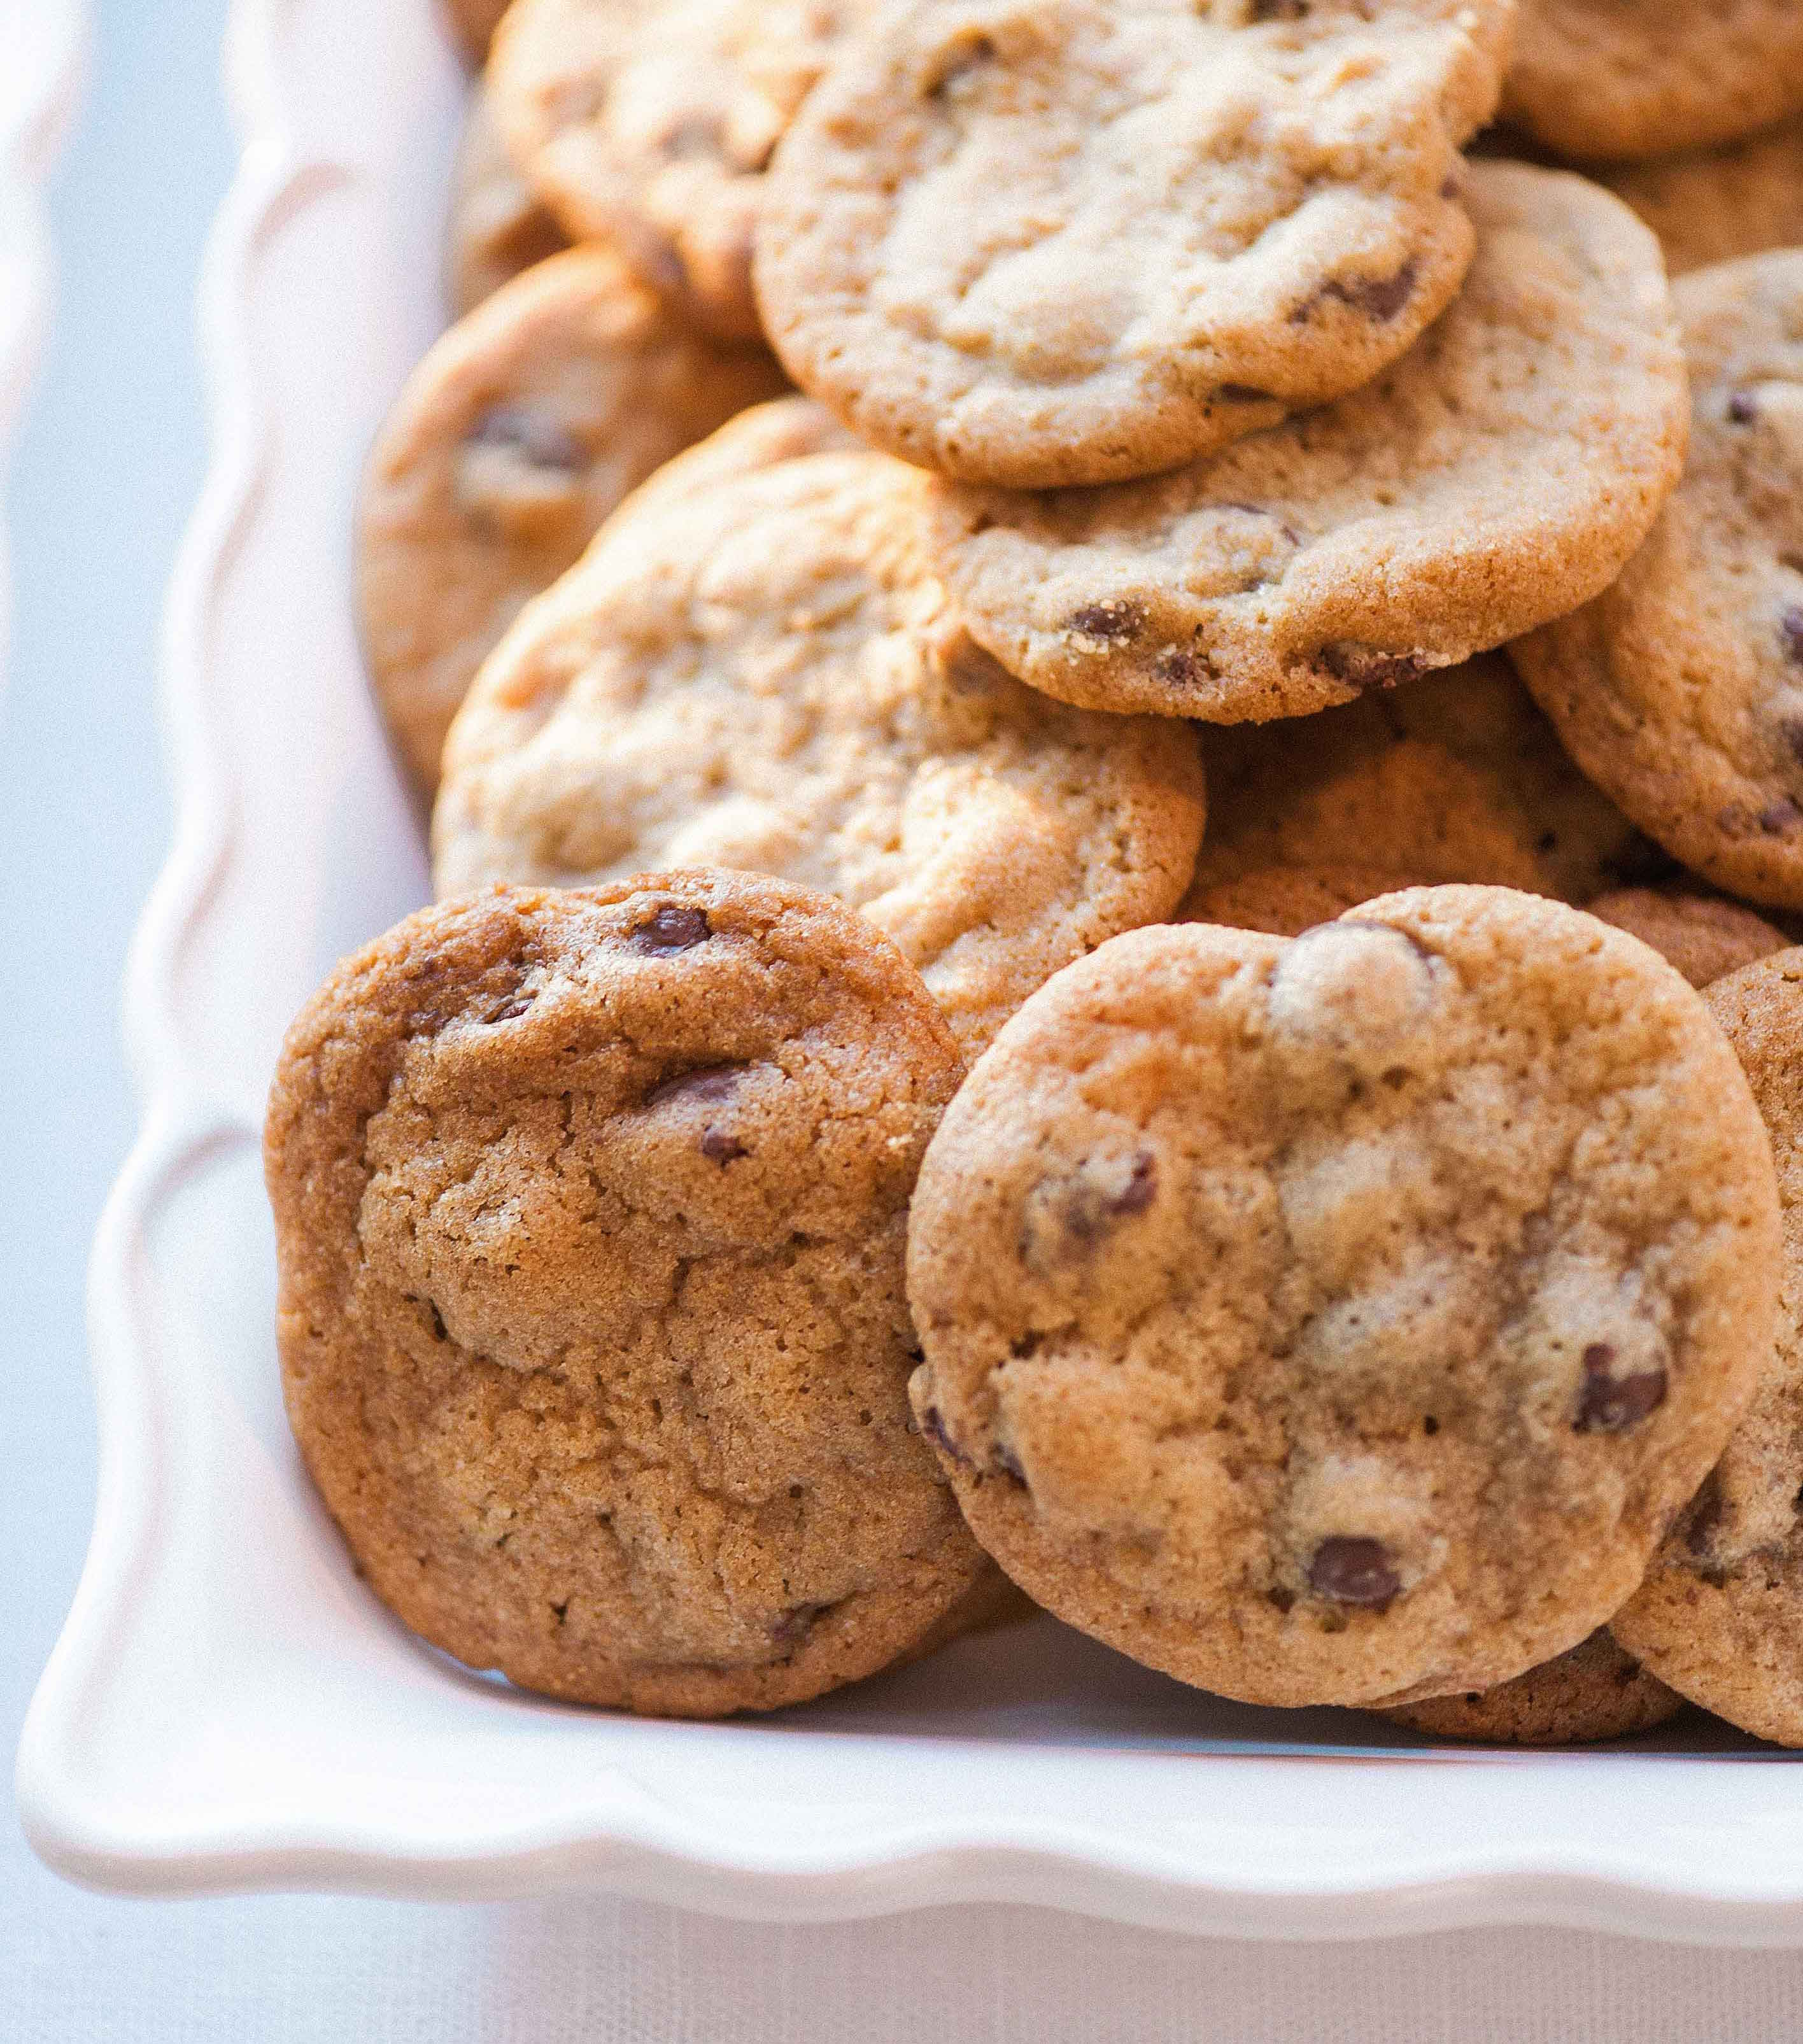 Chocolate chip cookies on white platter